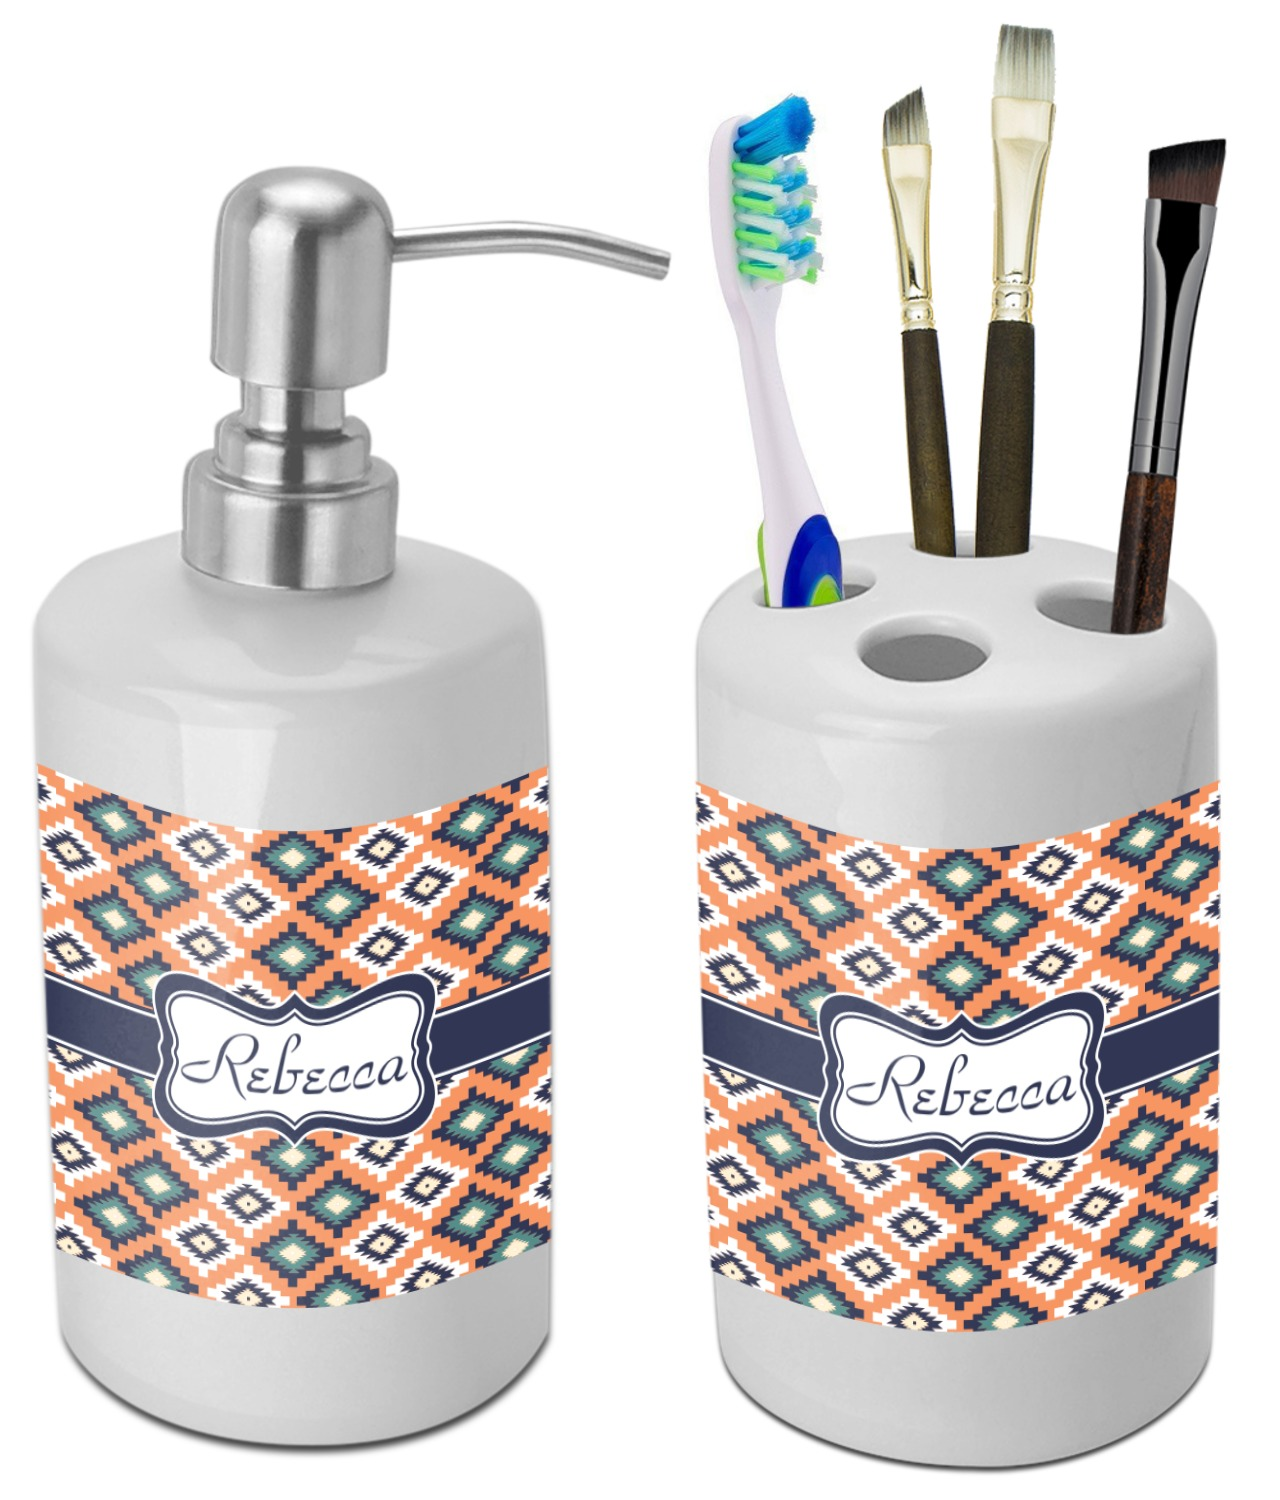 Tribal Bathroom Accessories Set (Ceramic) (Personalized ...